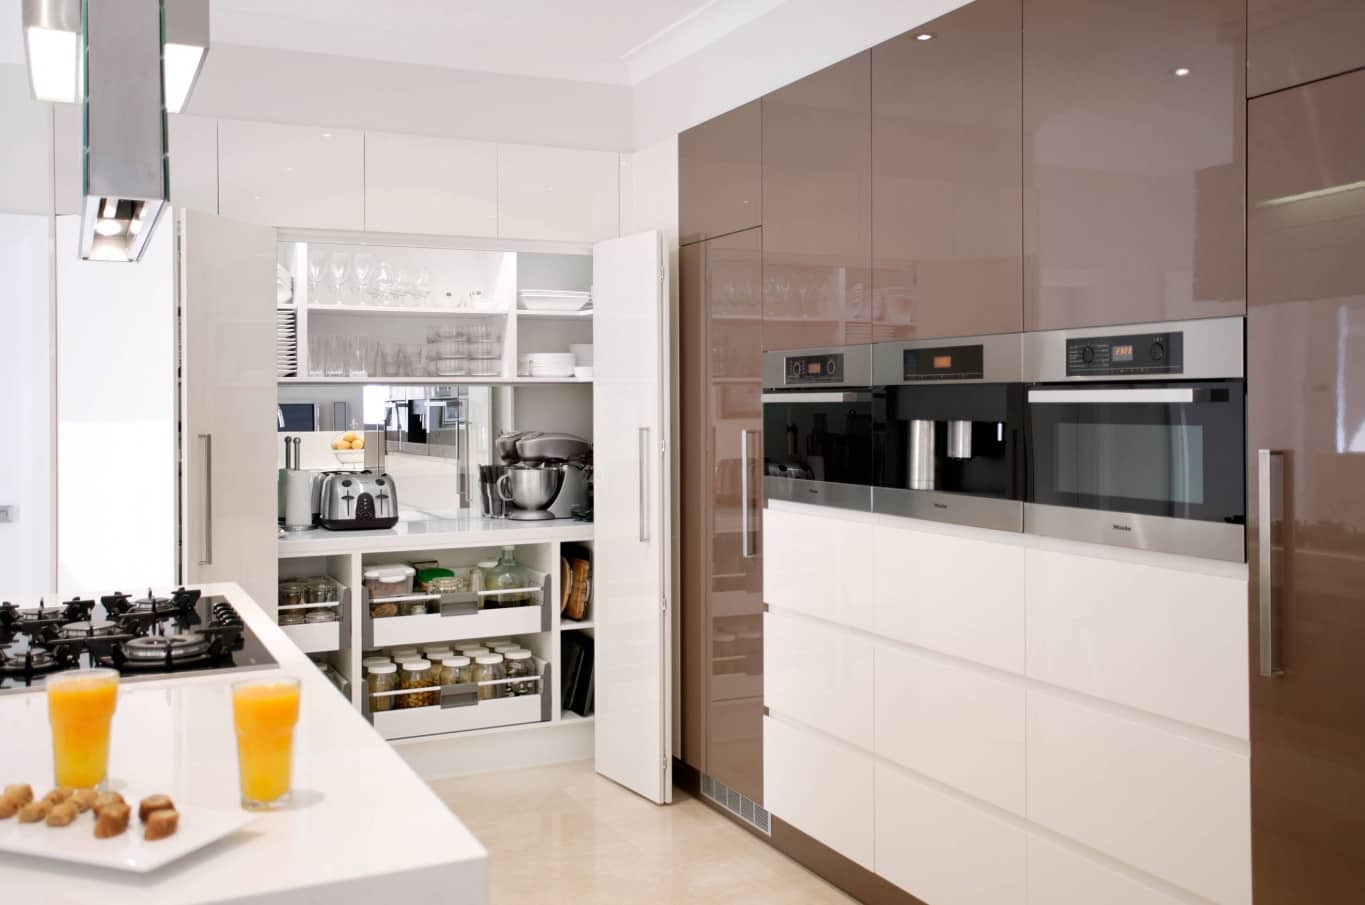 New Homeowner? Top 3 Places You Should Focus Your Design Efforts. Minimalistic modern functional kitchen with glossy surfaces